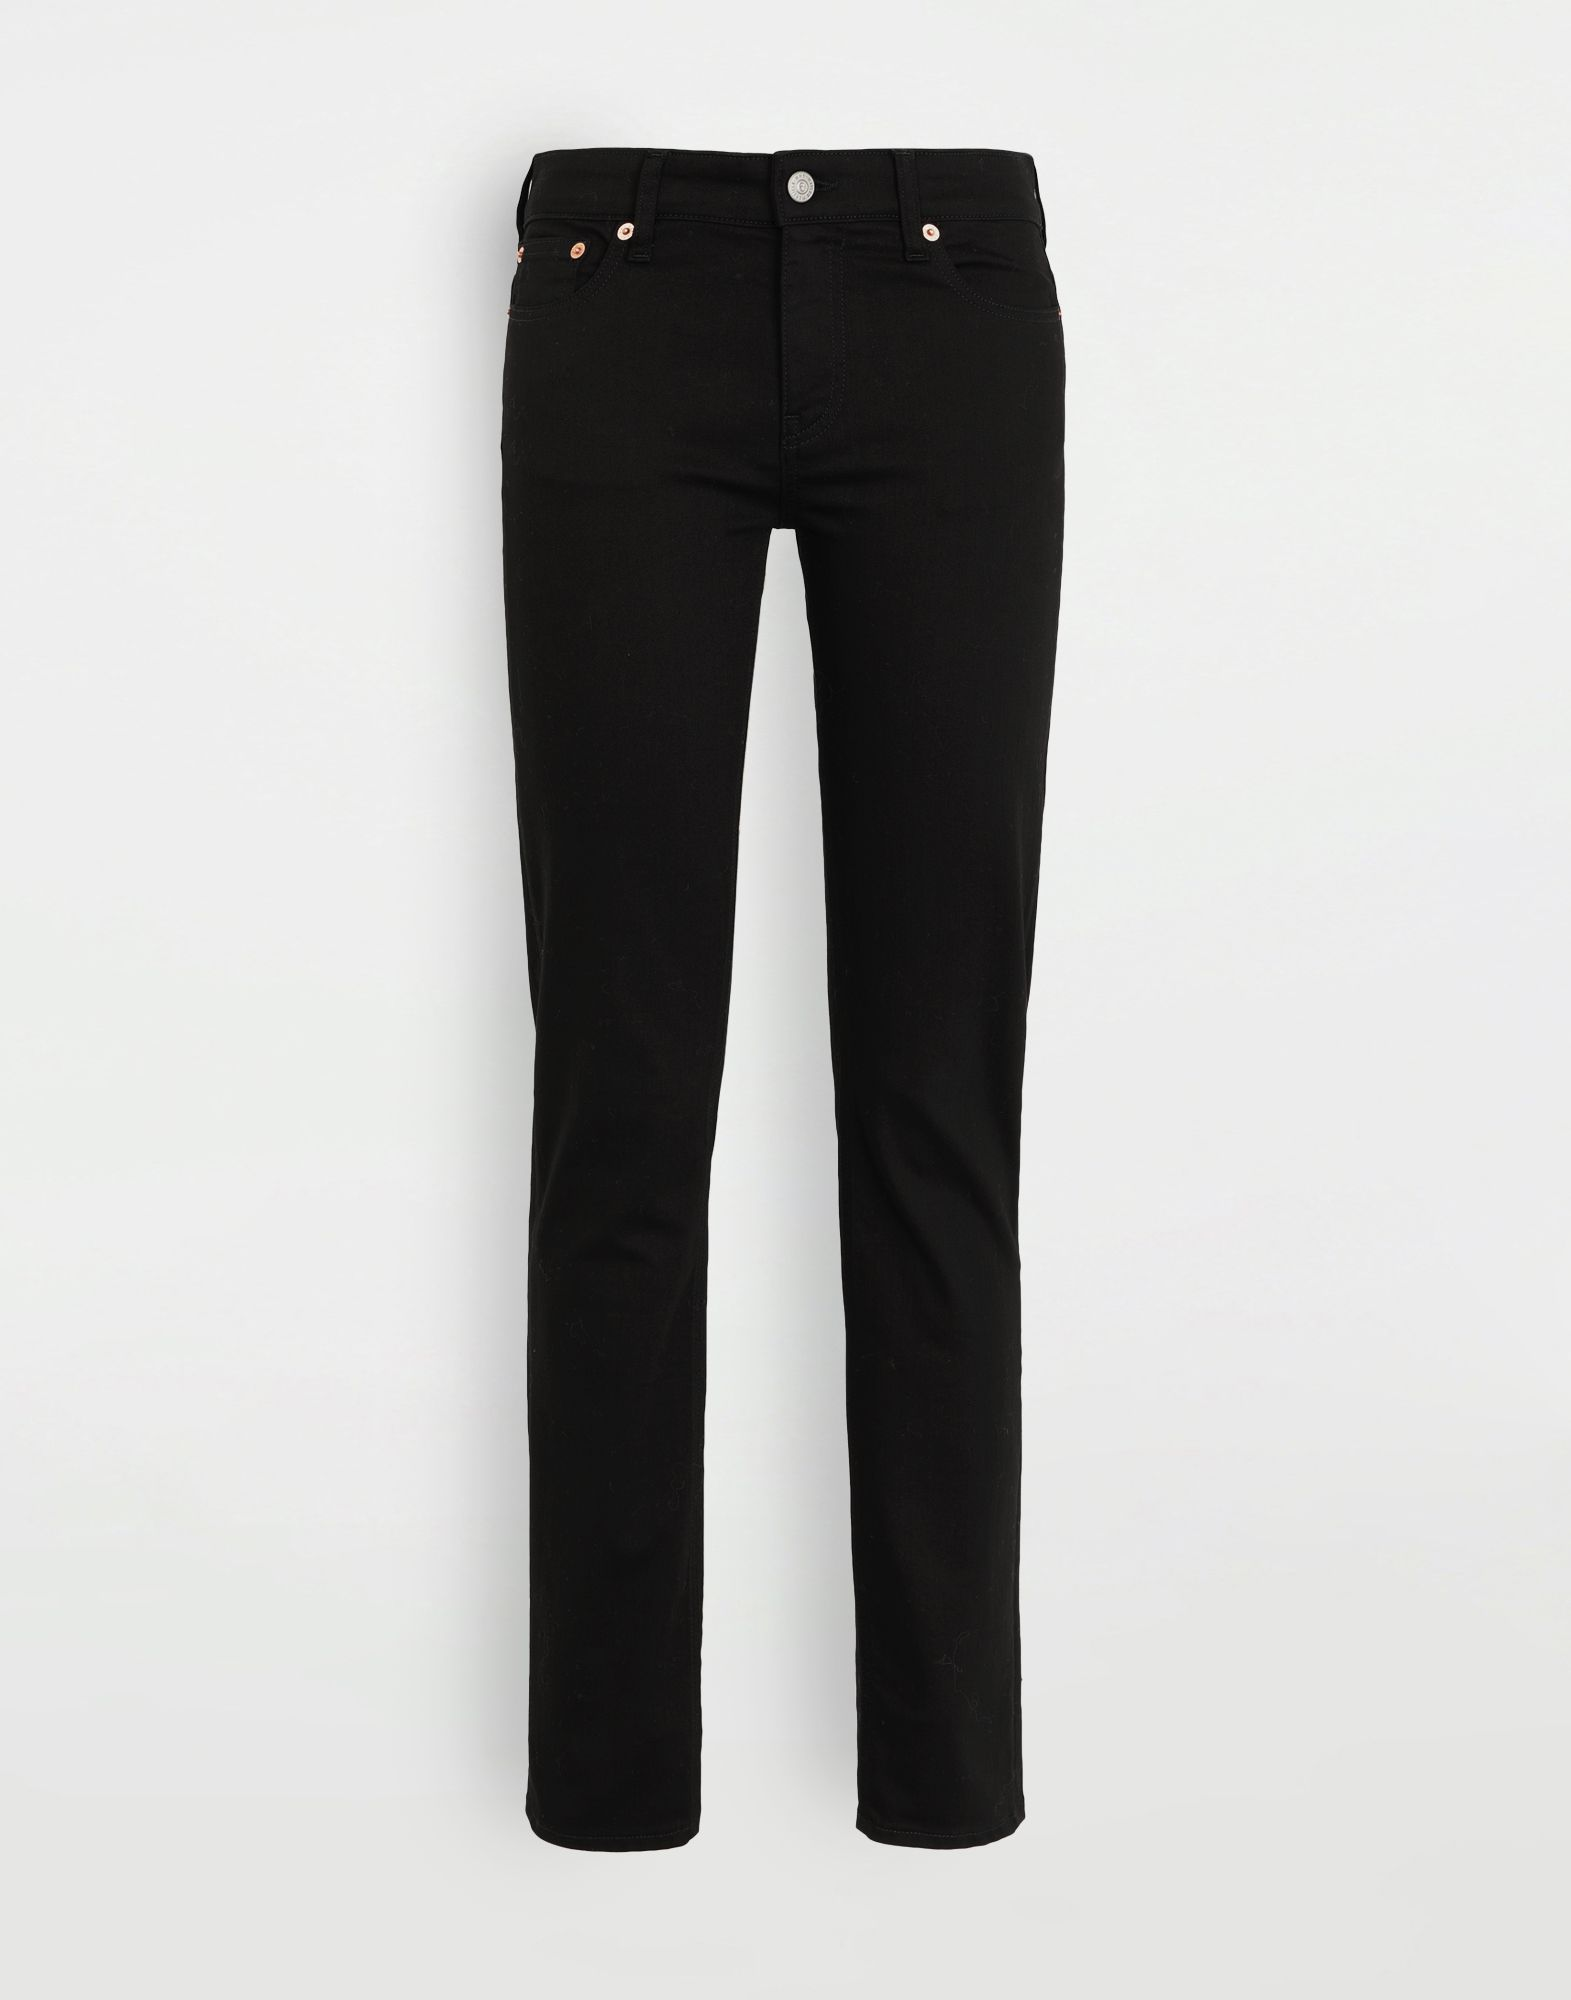 MM6 MAISON MARGIELA Skinny jeans Trousers Woman f